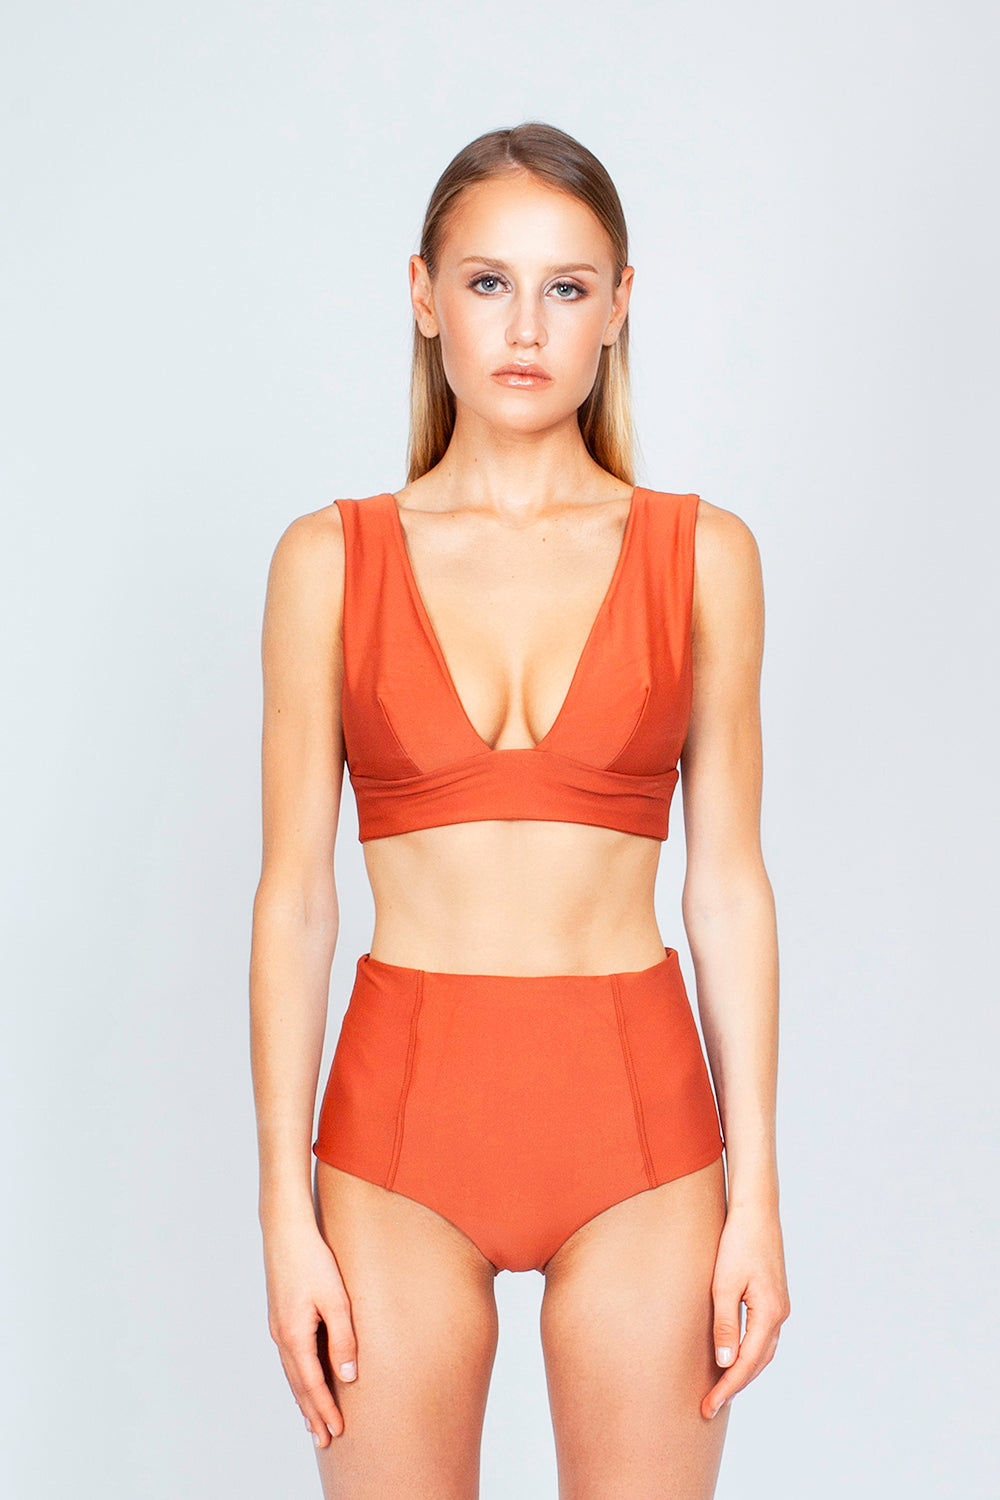 THE ONES WHO Dive Long Triangle Bikini Top - Copper Orange Bikini Top | Copper Orange| The Ones Who Dive Long Triangle Bikini Top - Copper Orange Long triangle top  V neckline  Thick bra band  V Back  Pull over  Made in LA  Fabric: 80% Nylon 20% Elastane Front View